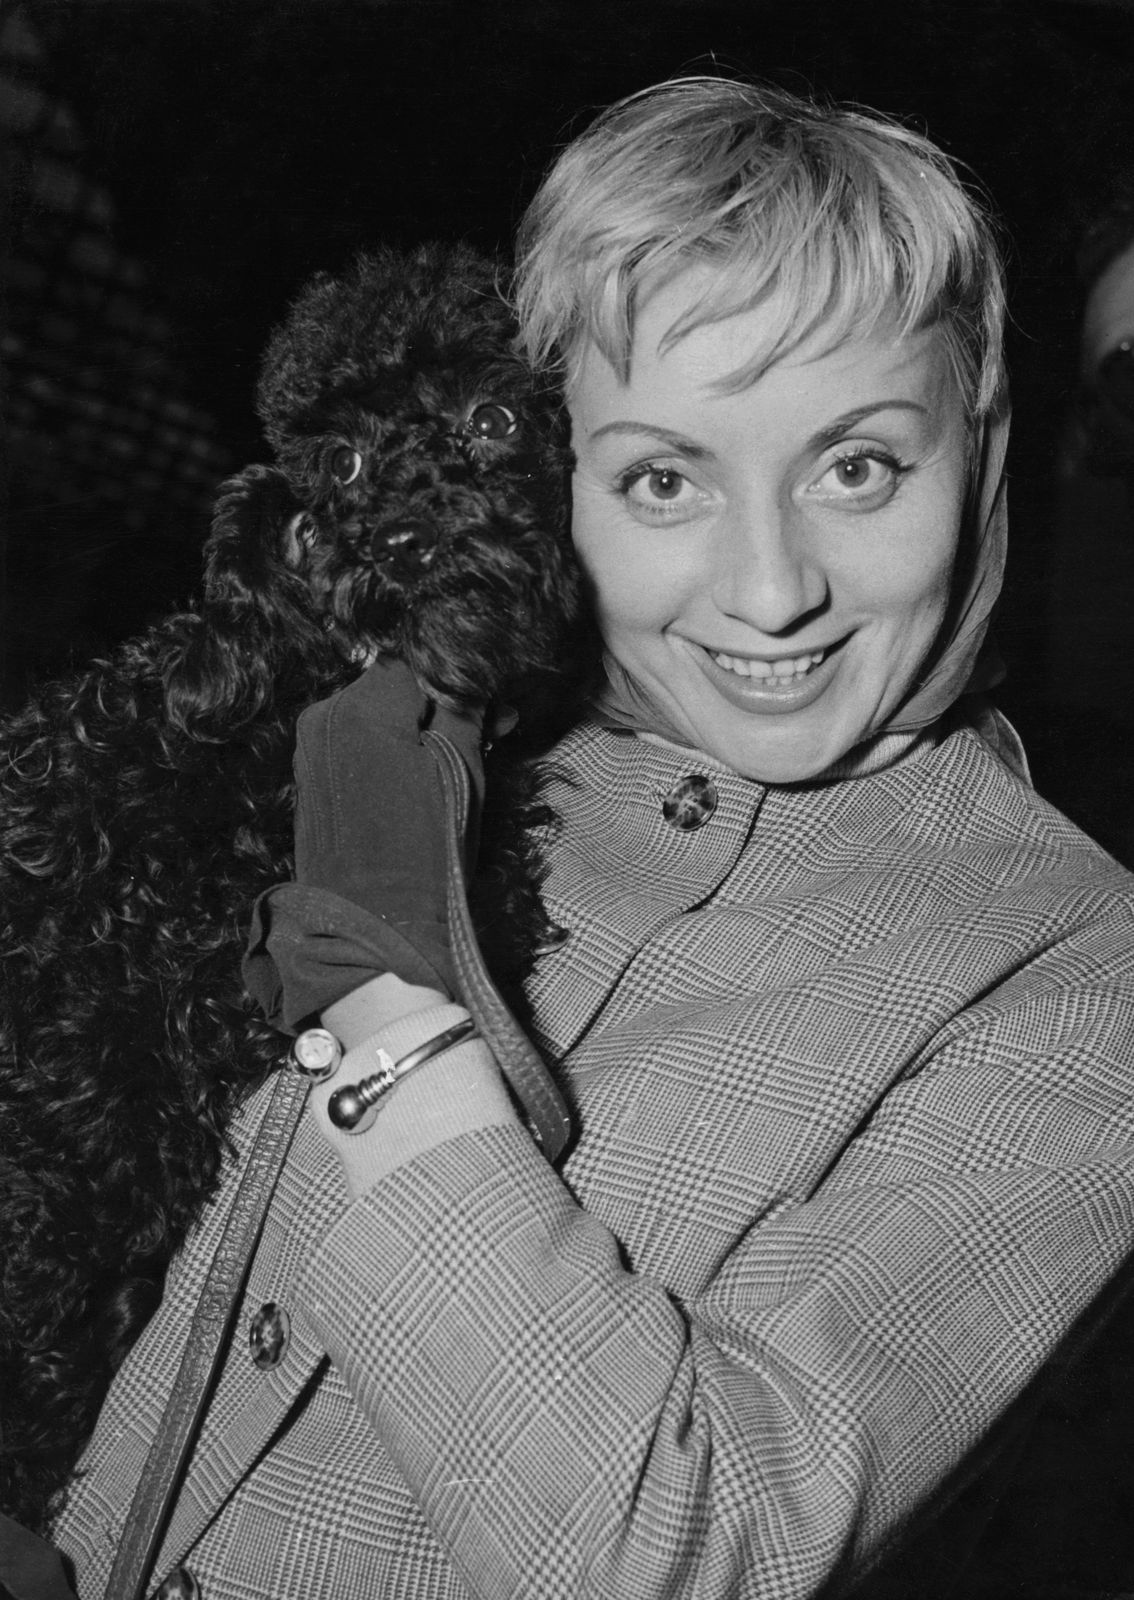 Annie Cordy arrive à la Gare du Nord à Paris, France, 30 septembre 1957. | Photo : Getty Images